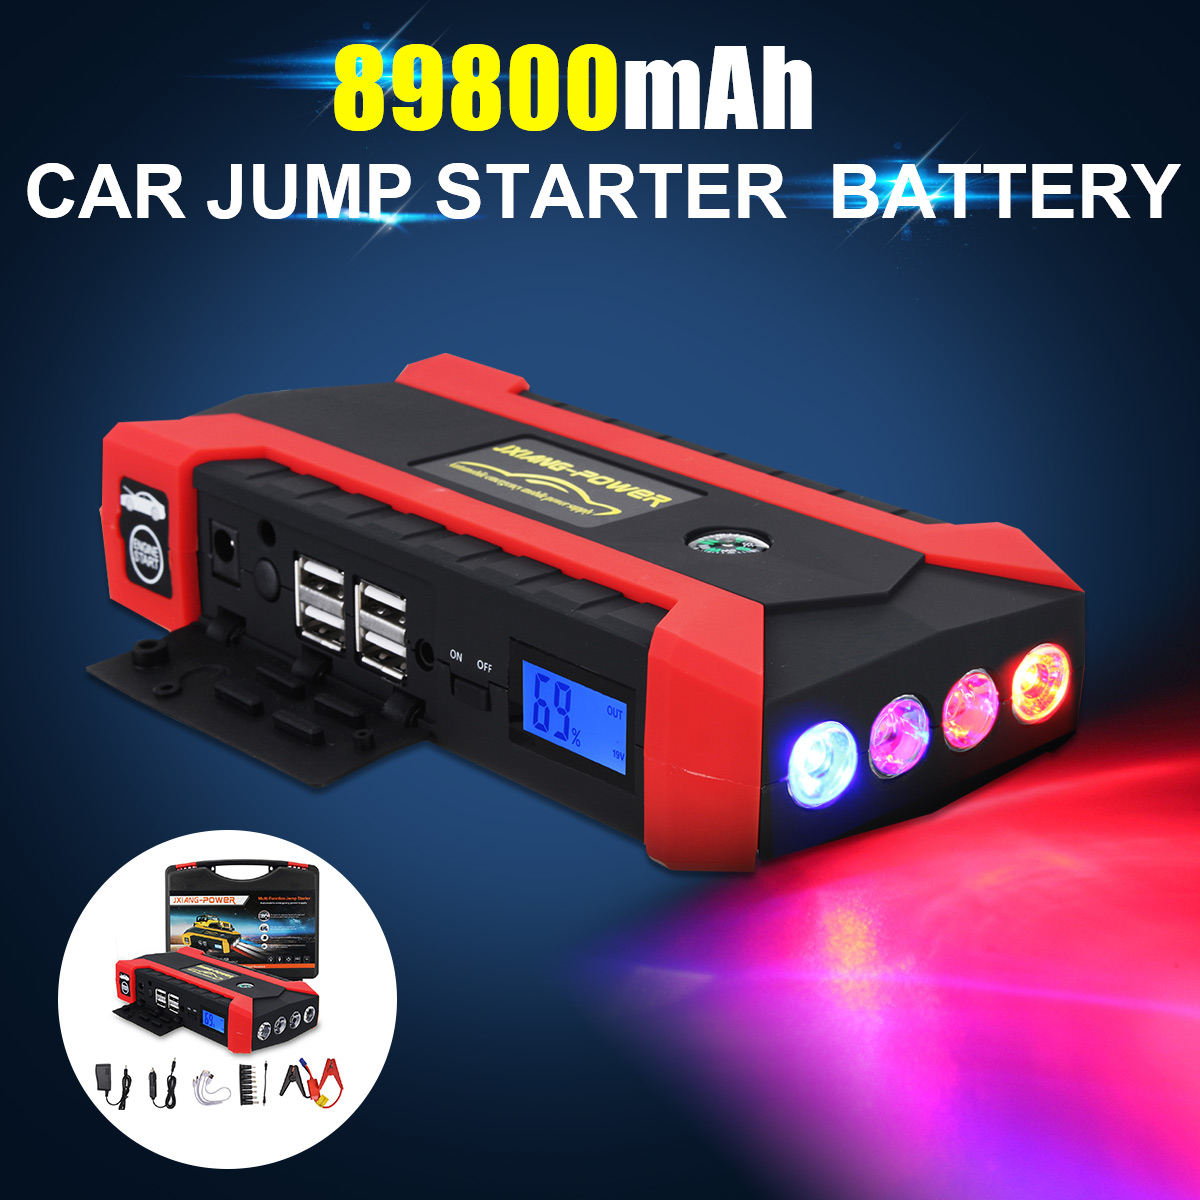 89800 MAh 12V 4 USB High Capacity Car Jump Starter LED Light Mutifuction Portable Car Battery Booster Charger Power Bank